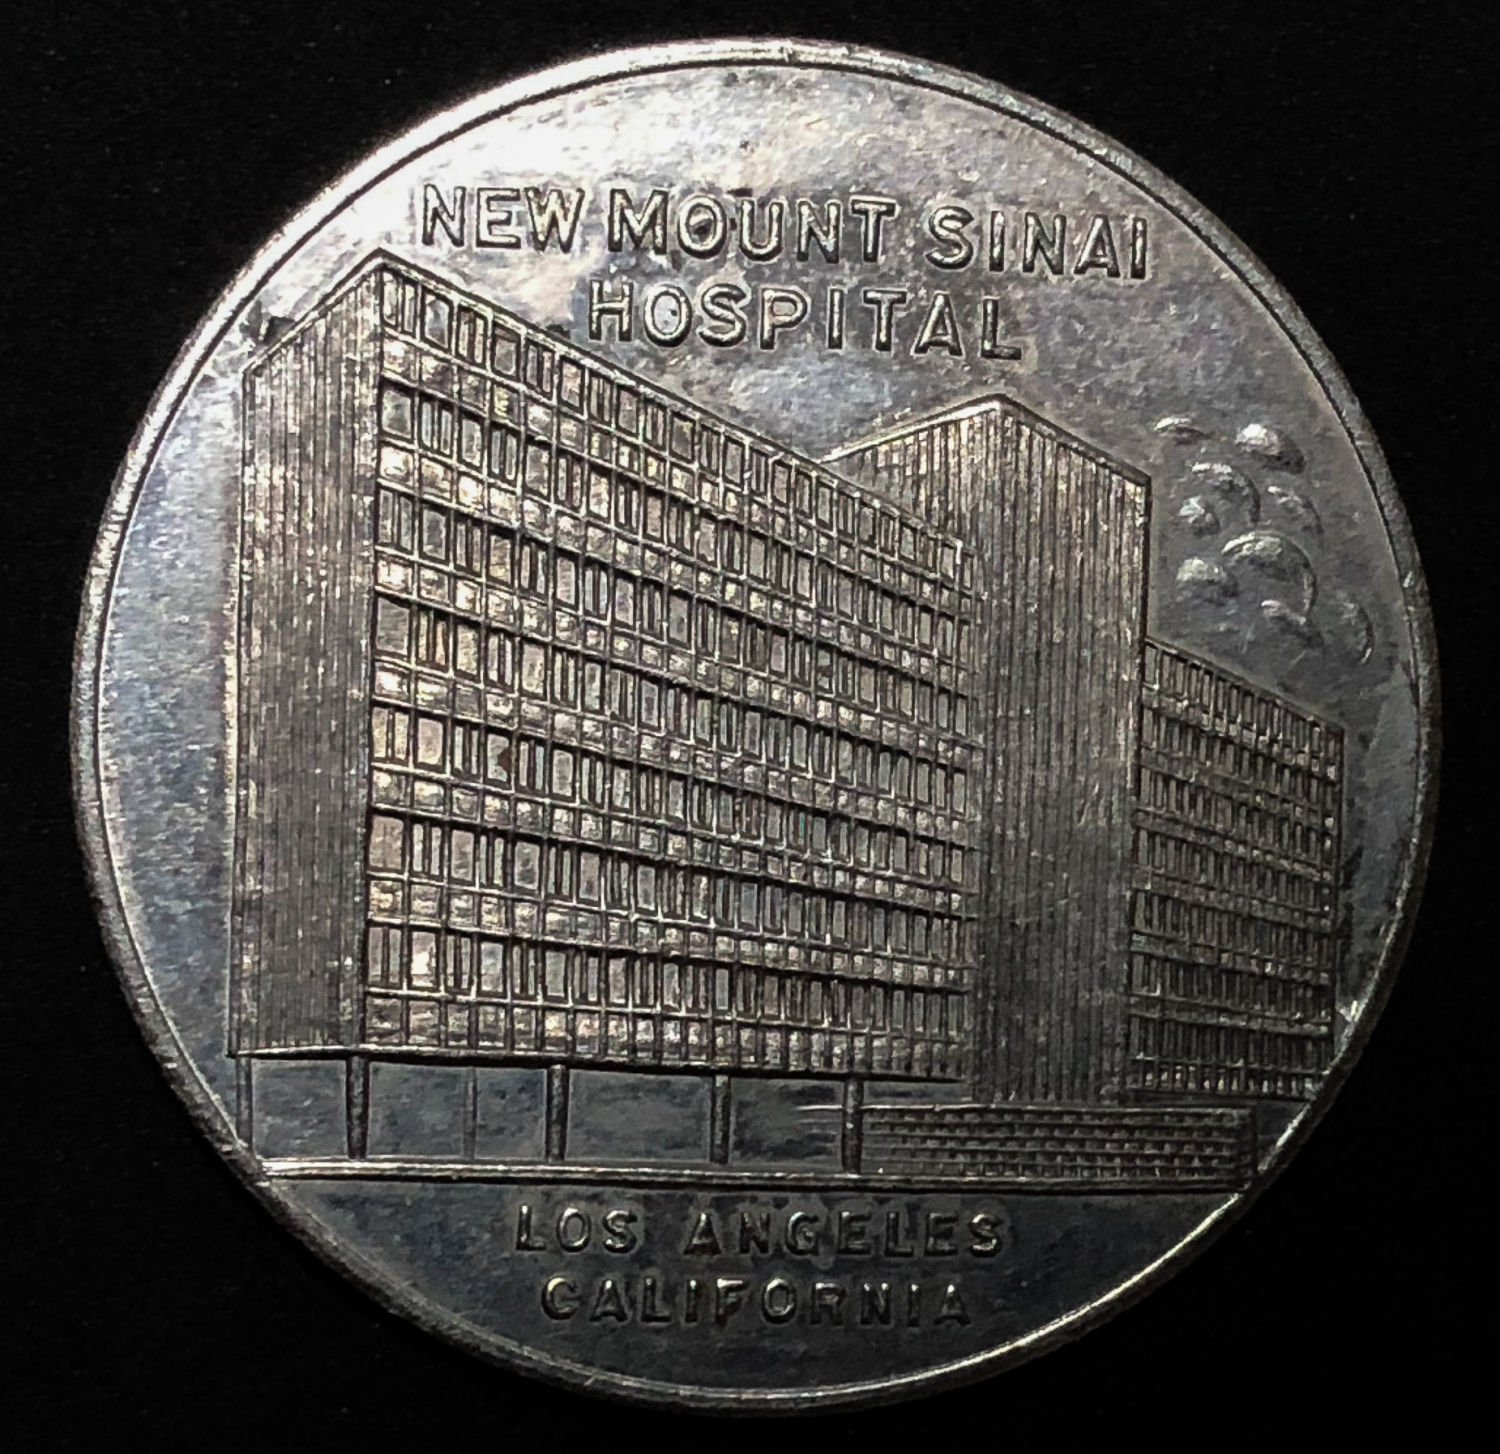 Lot 7 - Medals, Tokens.  -  yigal avrahamy Auction 03 - Coins and Banknotes of Israel and Palestine, medals and tokens.